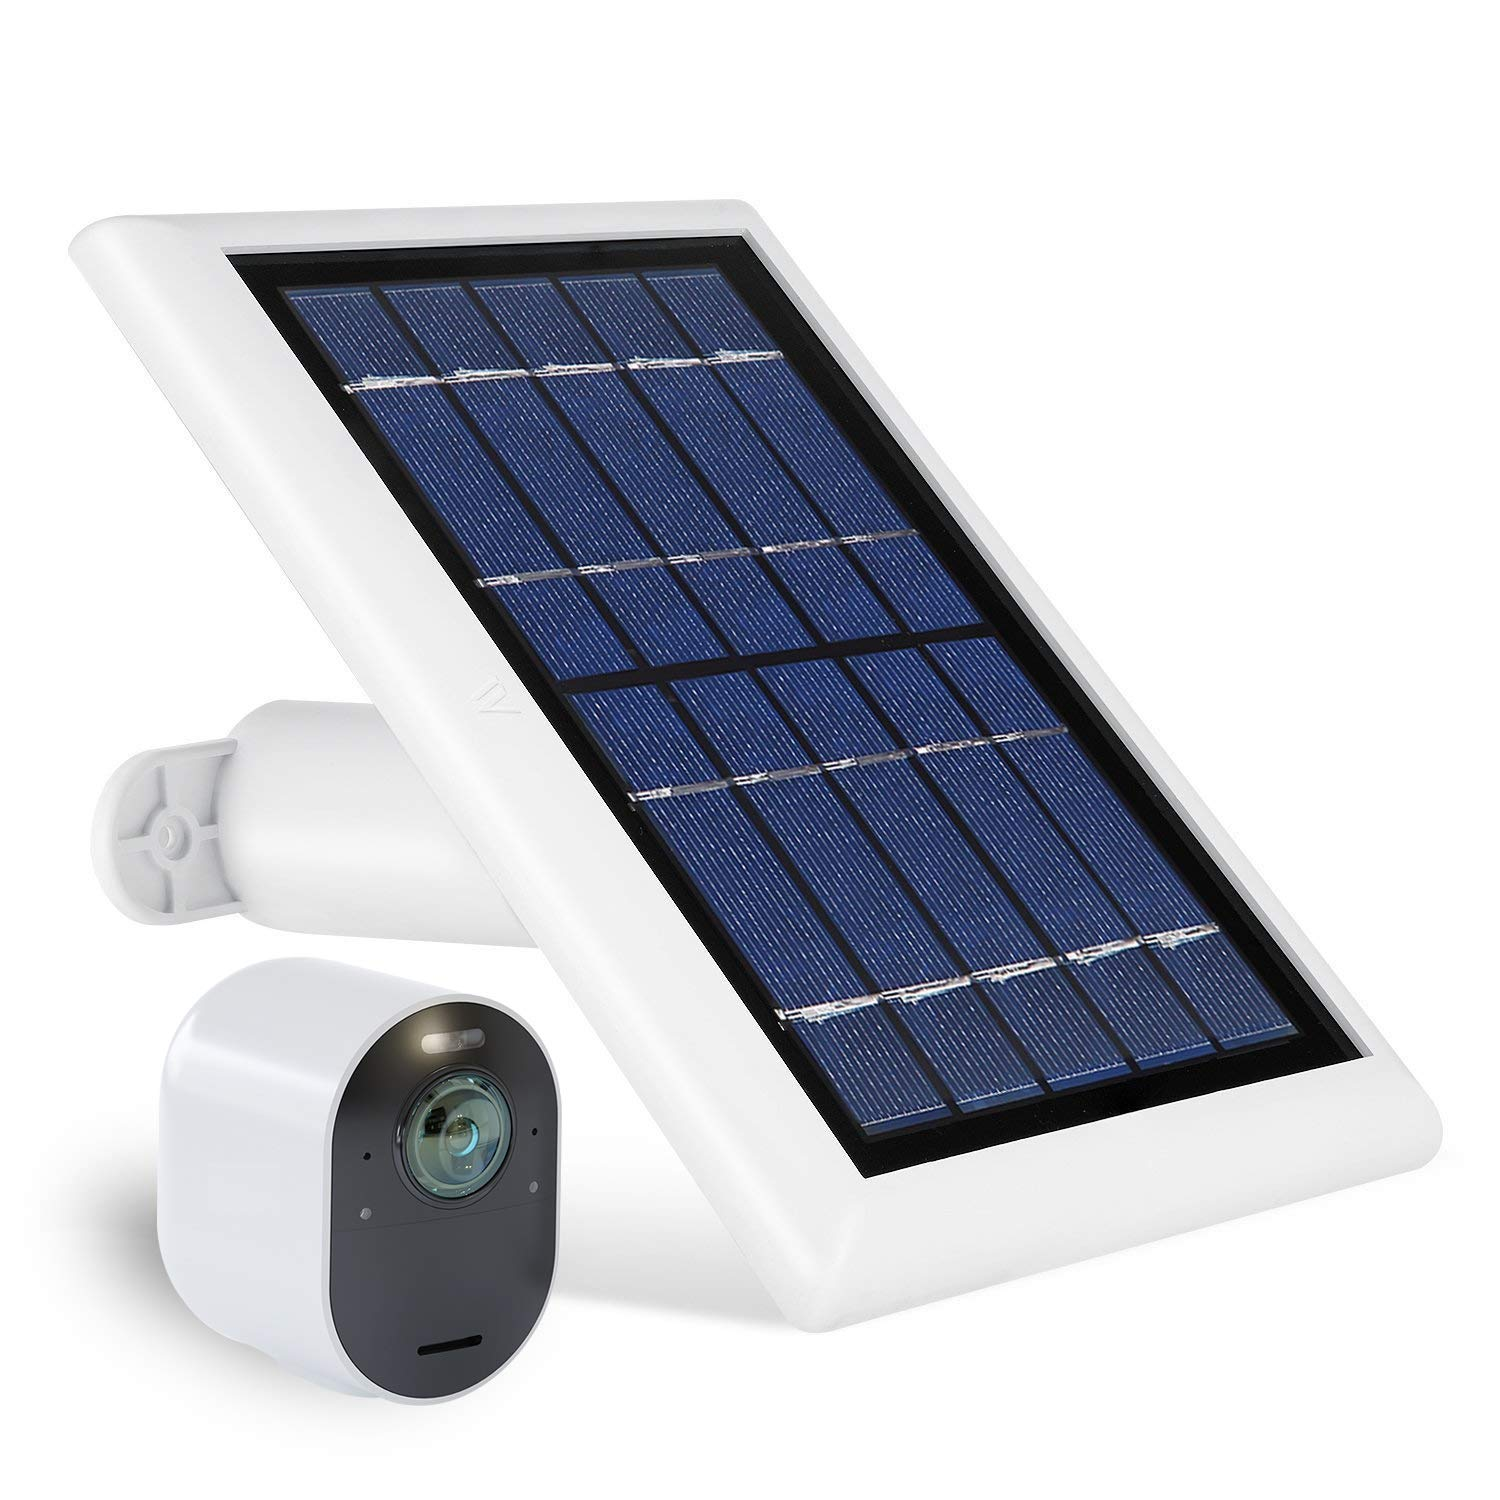 Wasserstein Solar Panel with 13.1ft/4m Cable Compatible with Arlo Ultra & Arlo Pro 3 ONLY - Power Your Arlo Surveillance Camera continuously (1-Pack, White) (NOT Compatible with Arlo Pro/Pro2)